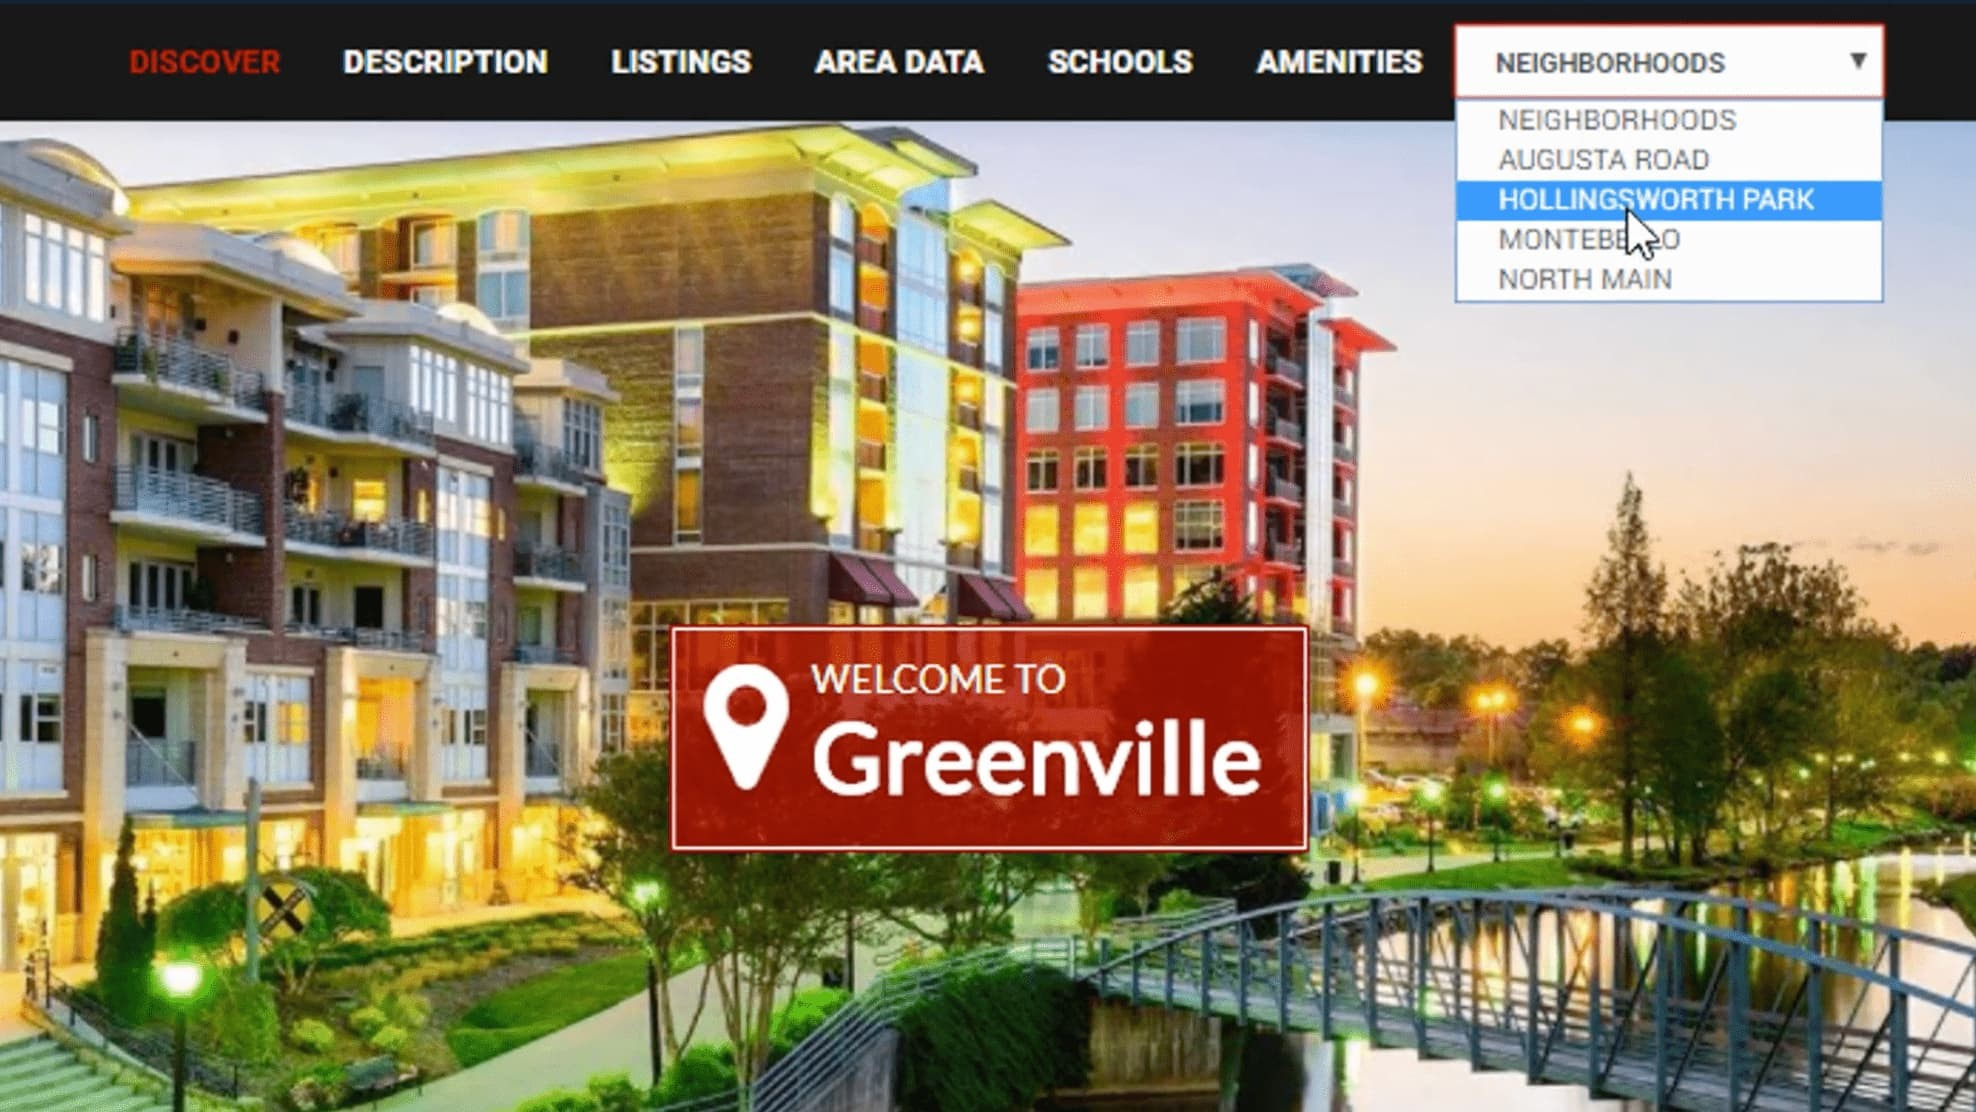 You'll get the biggest ROI from using Neighborhood pages